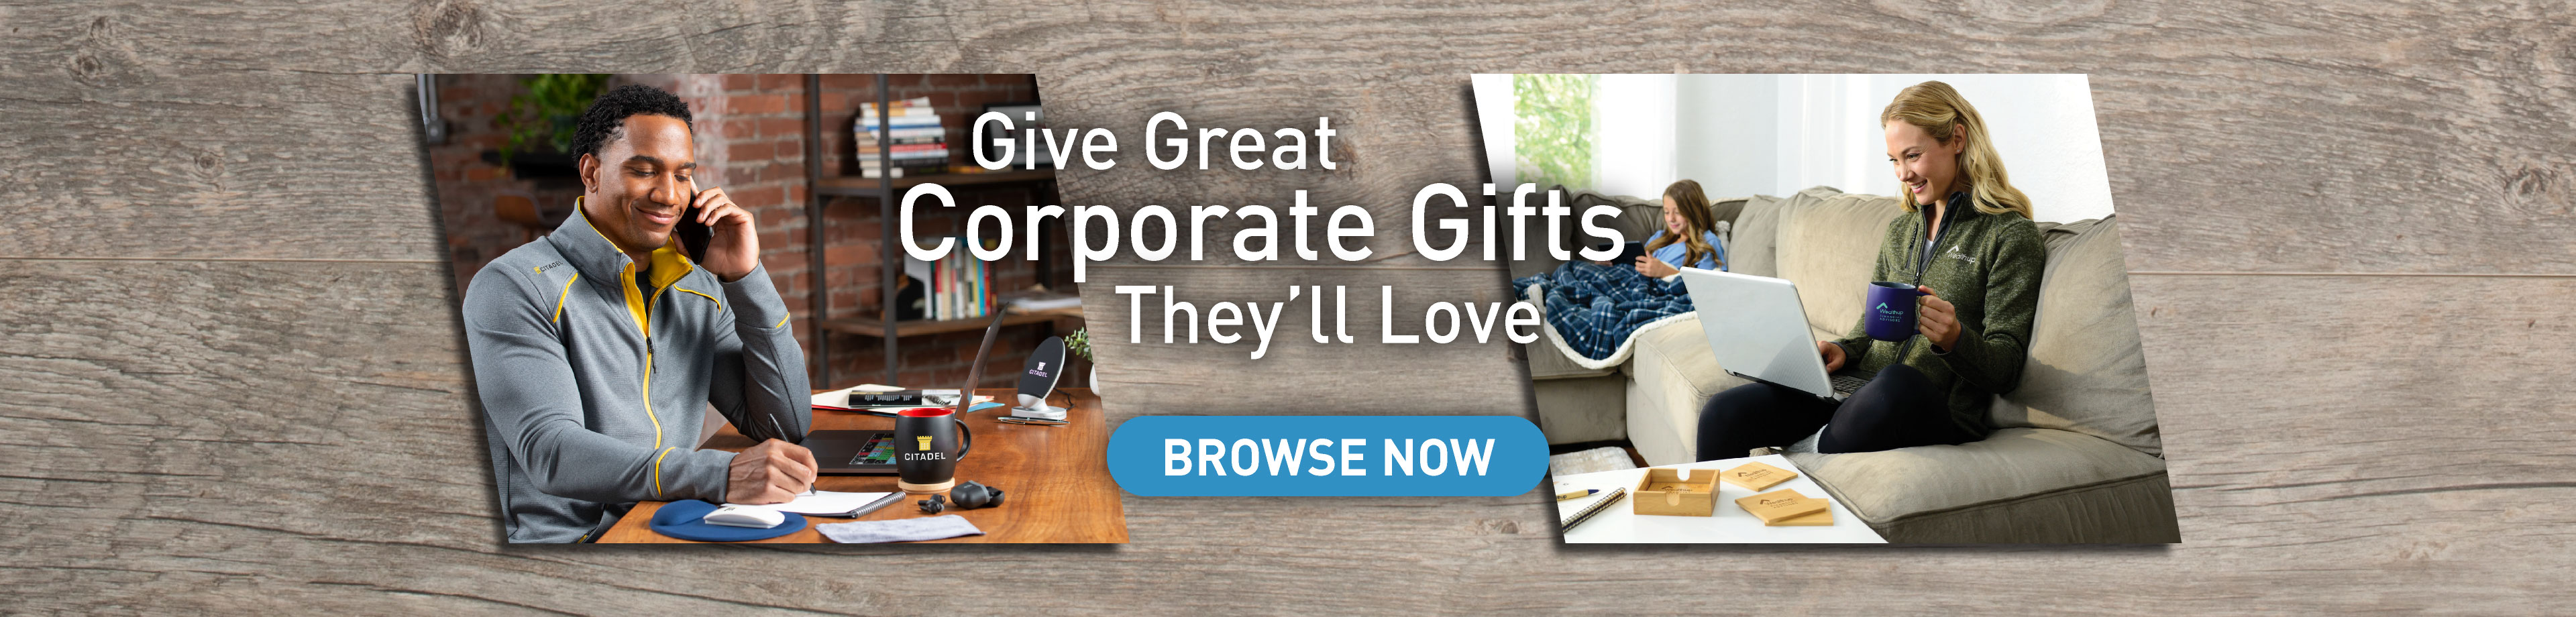 Corporate Gifts 2021 - Need great gift ideas for your clients or employees? Click to browse Canada's best selection of company branded gifts!